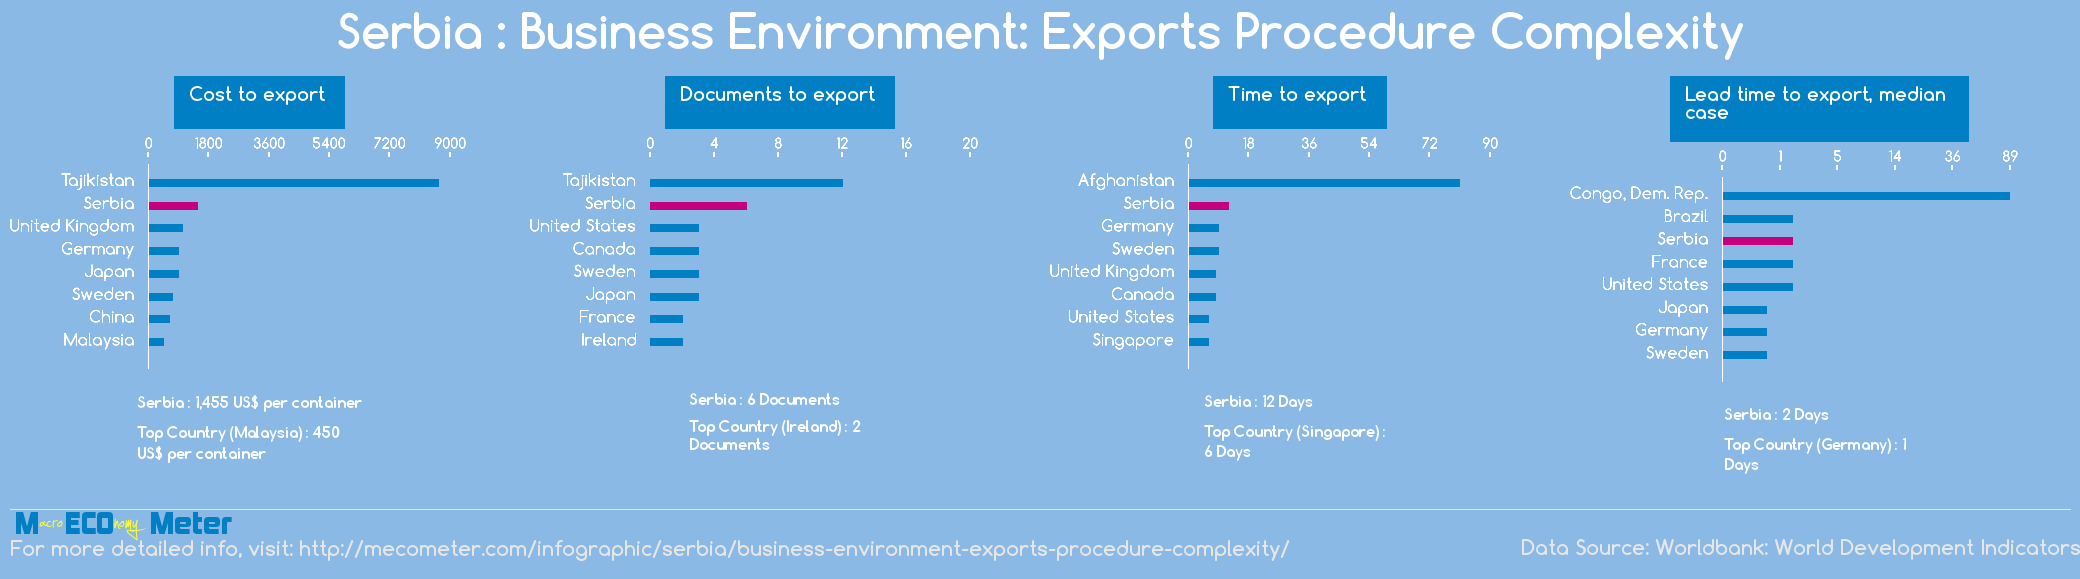 Serbia : Business Environment: Exports Procedure Complexity